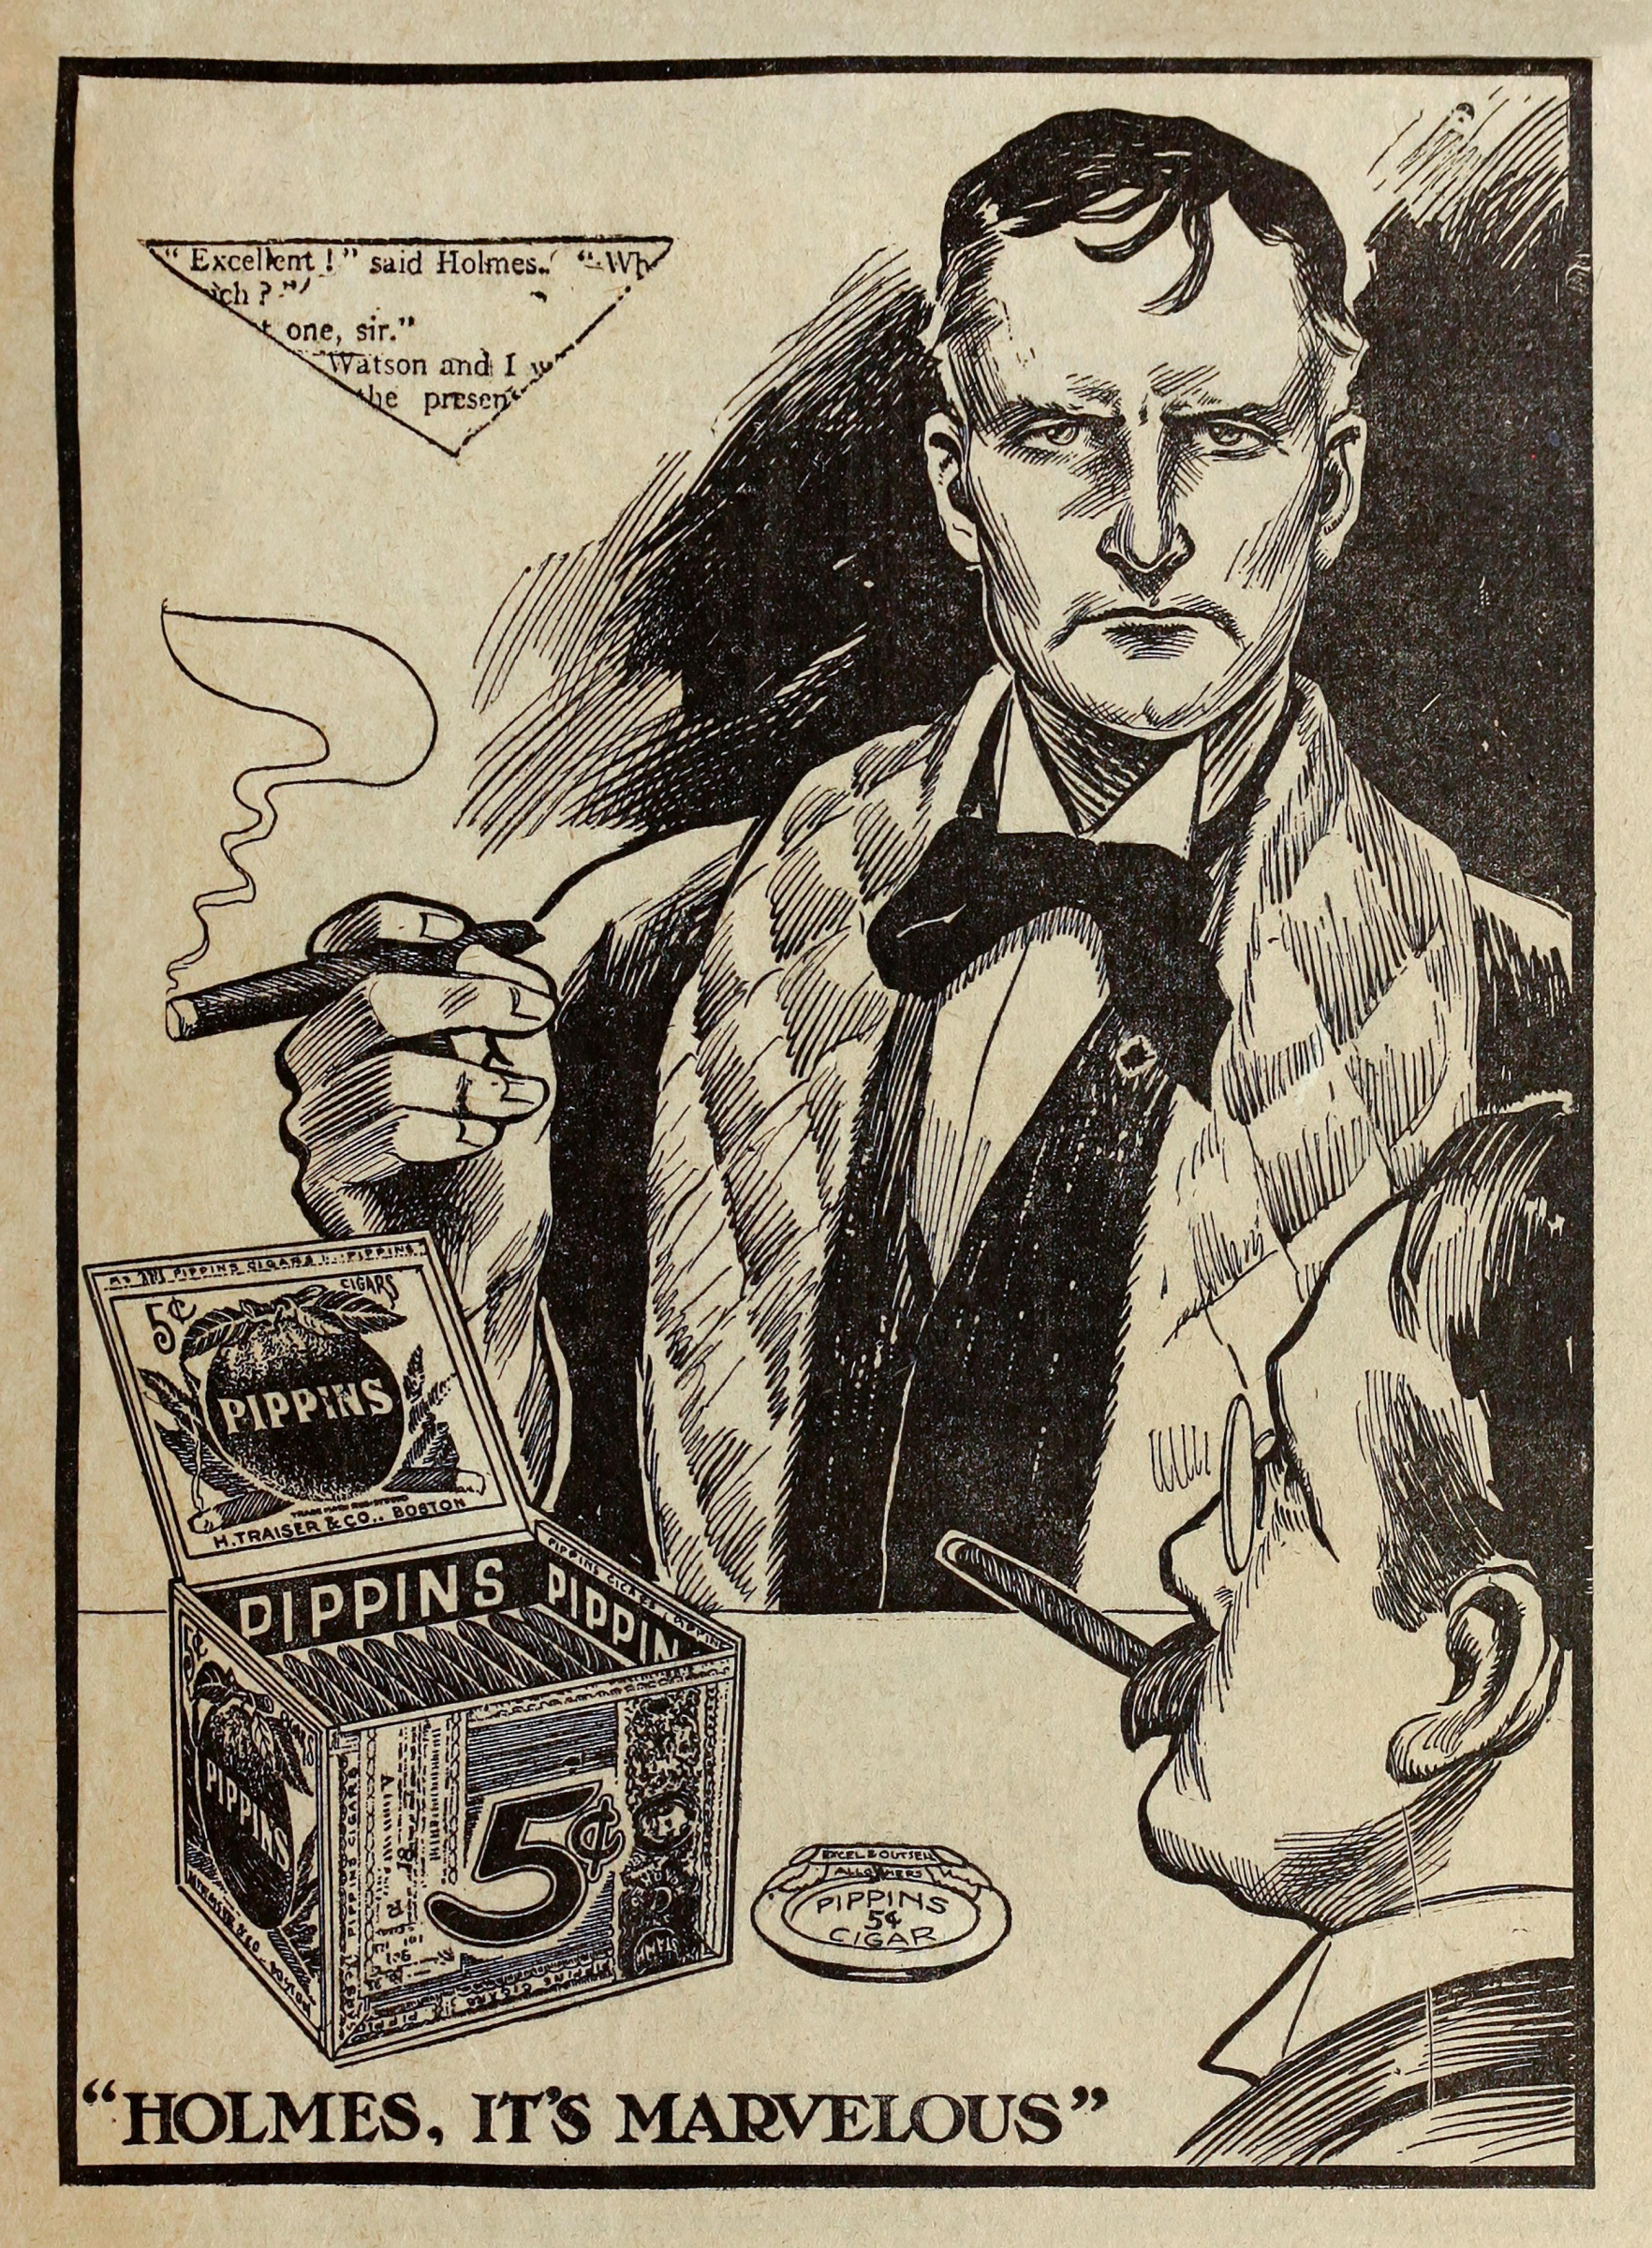 """Holmes, it's Marvelous"" Pippins Cigar print advert featuring Sherlock Holmes and Dr Watson. From a series of booklets distributed with The Boston Sunday Post in 1911. Sherlock is drawn to resemble actor William Gillette. (Image by Contraband Collection/Alamy Stock Photo)"